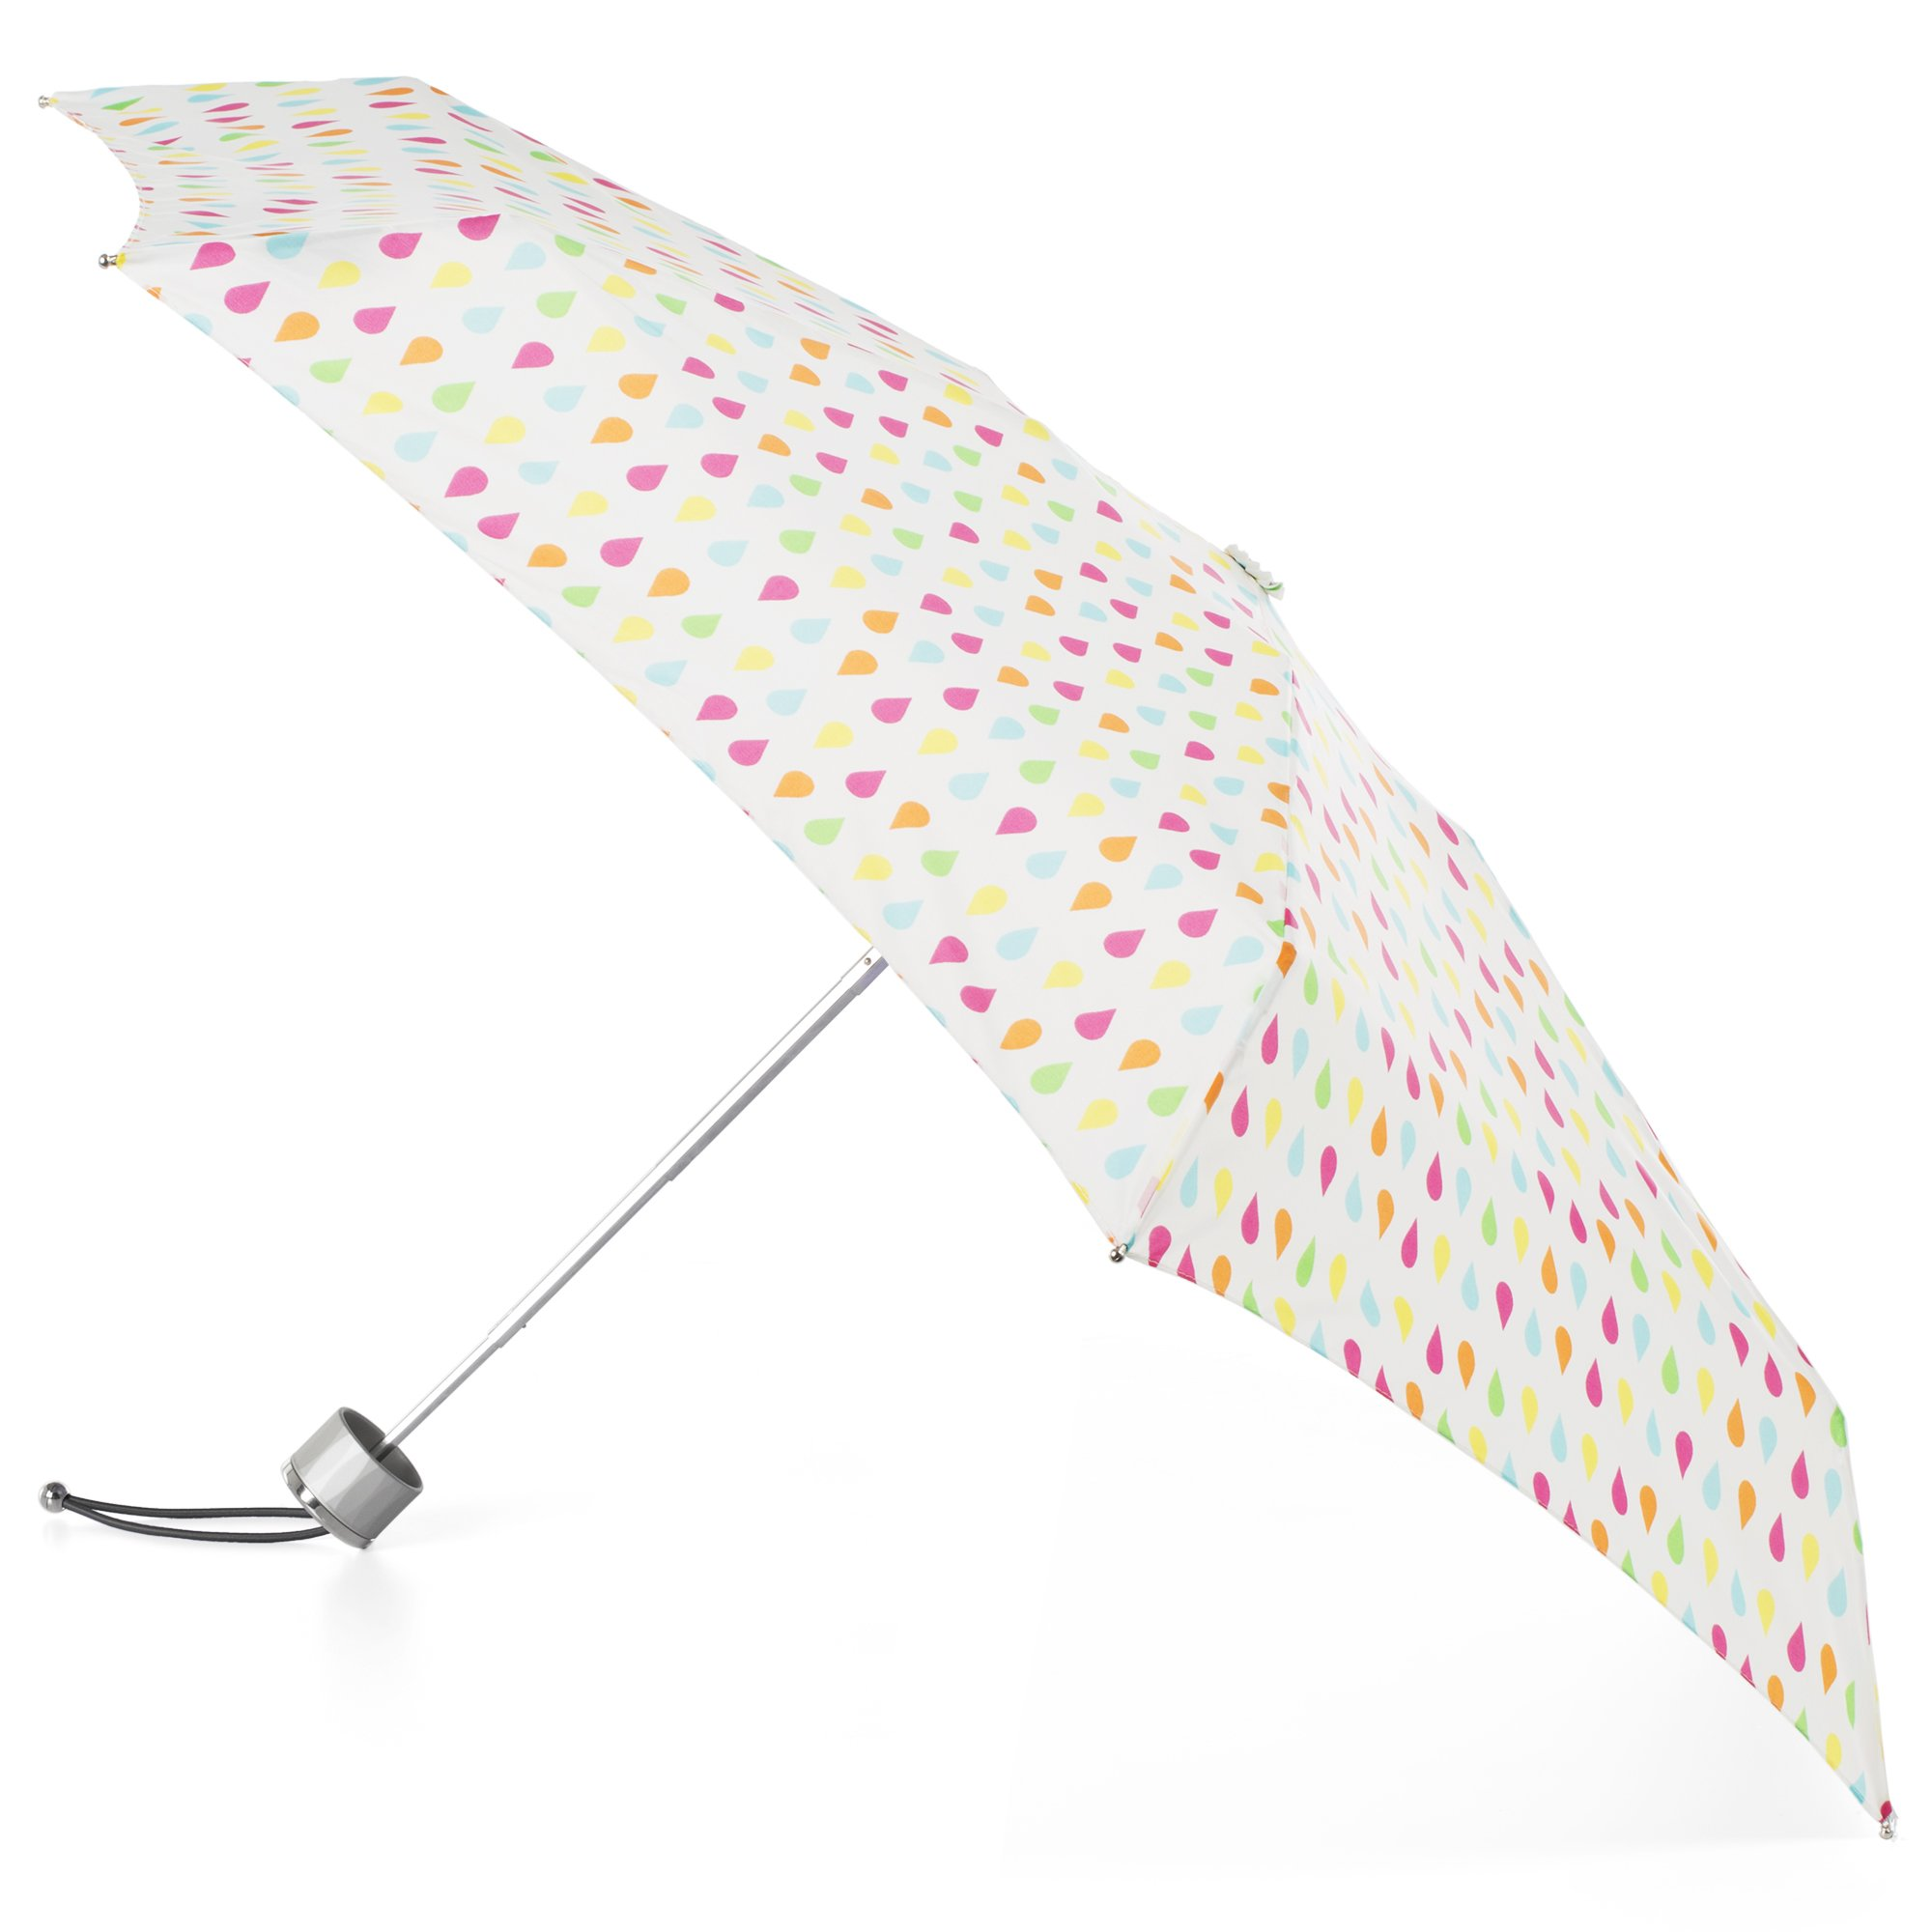 totes Compact Water-Resistant Travel Foldable Umbrella